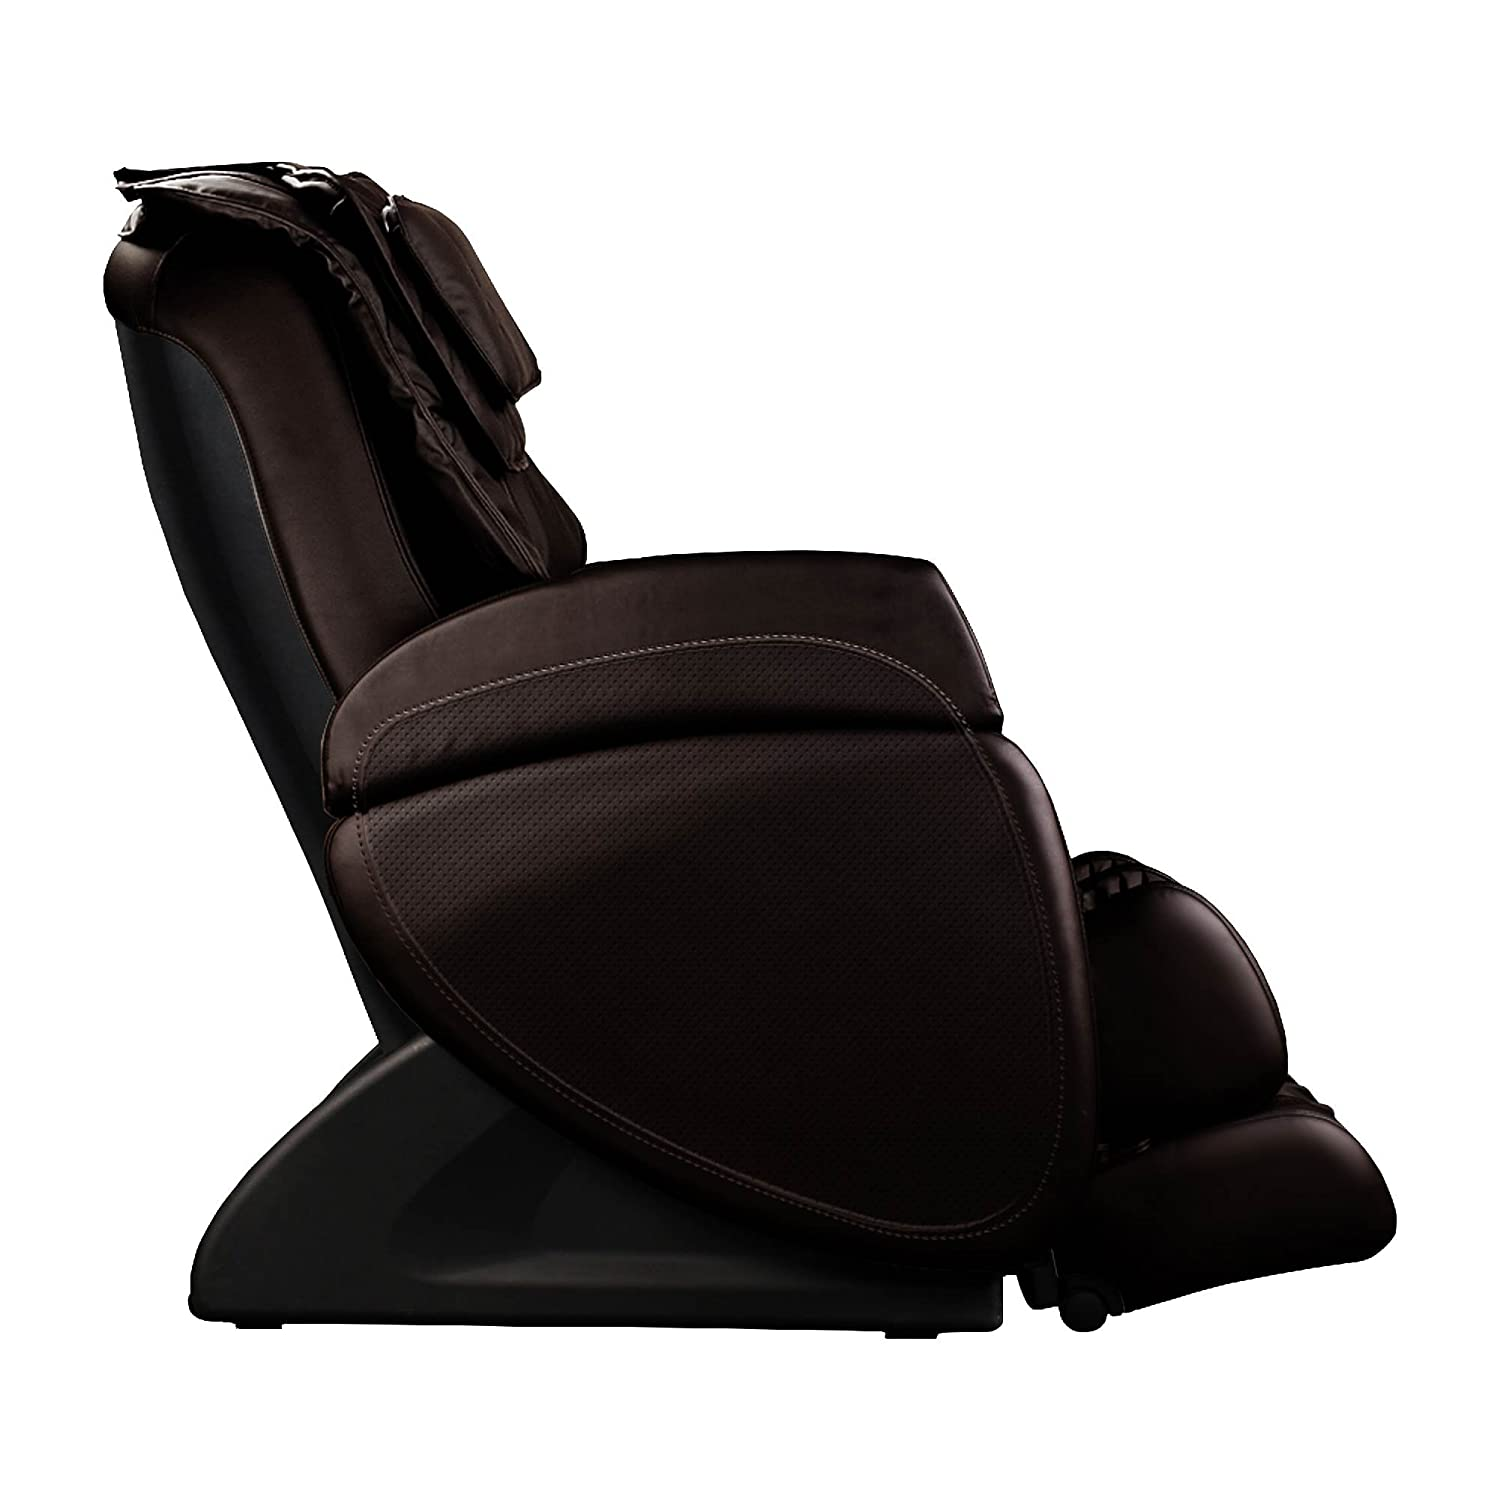 Amazon Galaxy EC 563 Massage Chair Brown Beauty